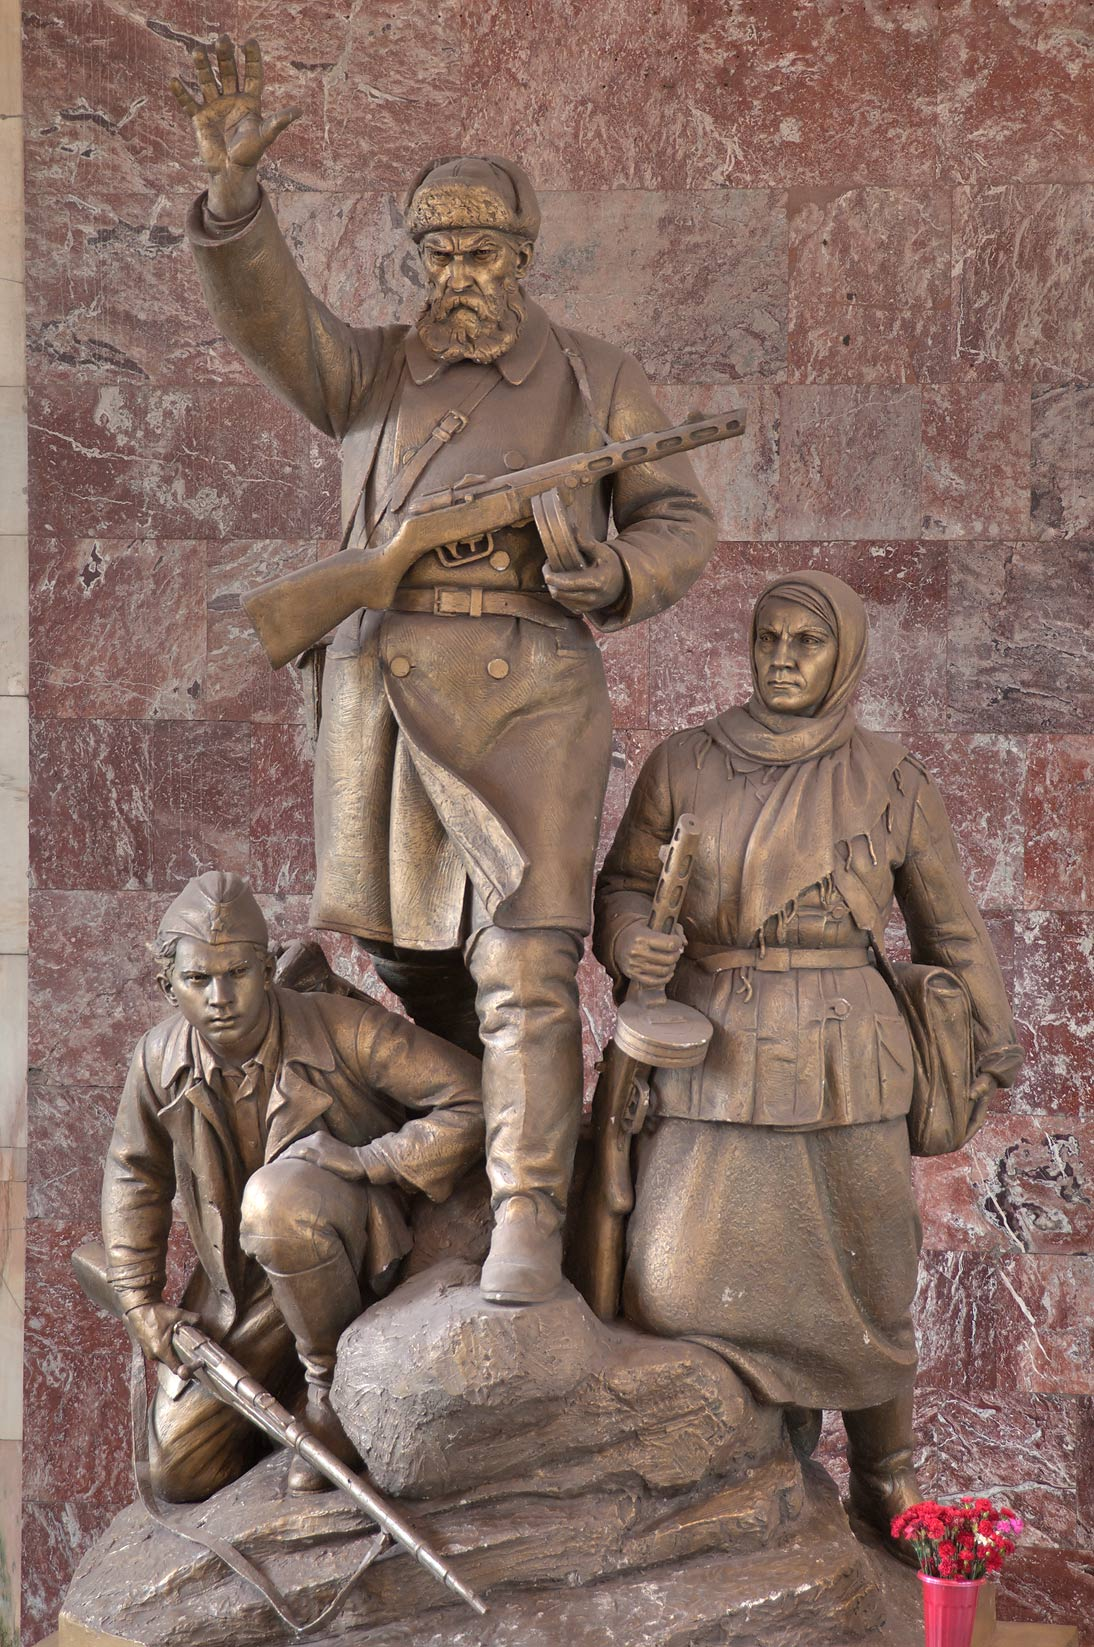 Bronze monument of guerrilla soldiers on subway...Metro) Partizanskaya. Moscow, Russia